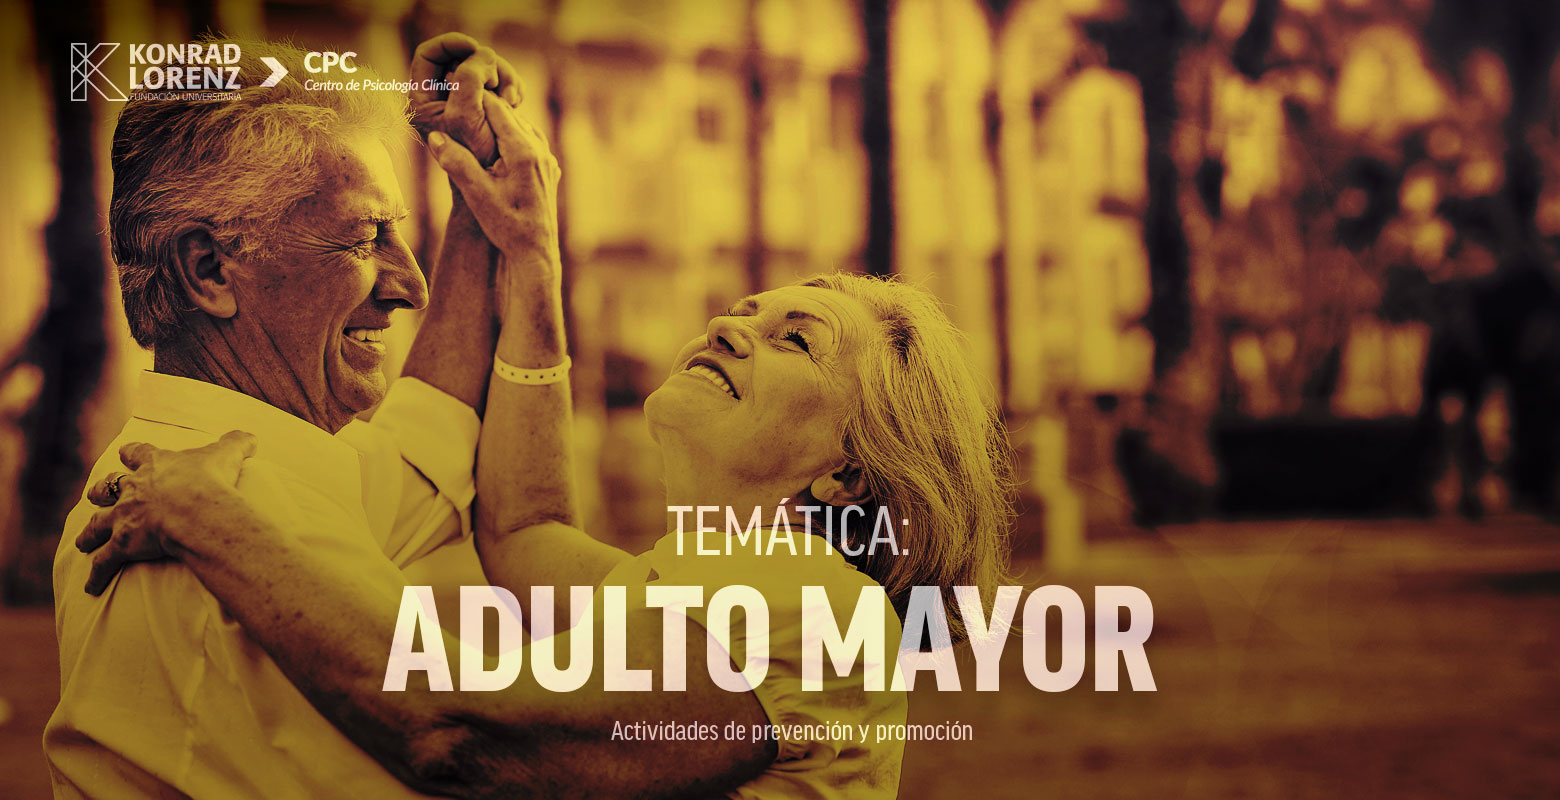 Temática: Adulto mayor